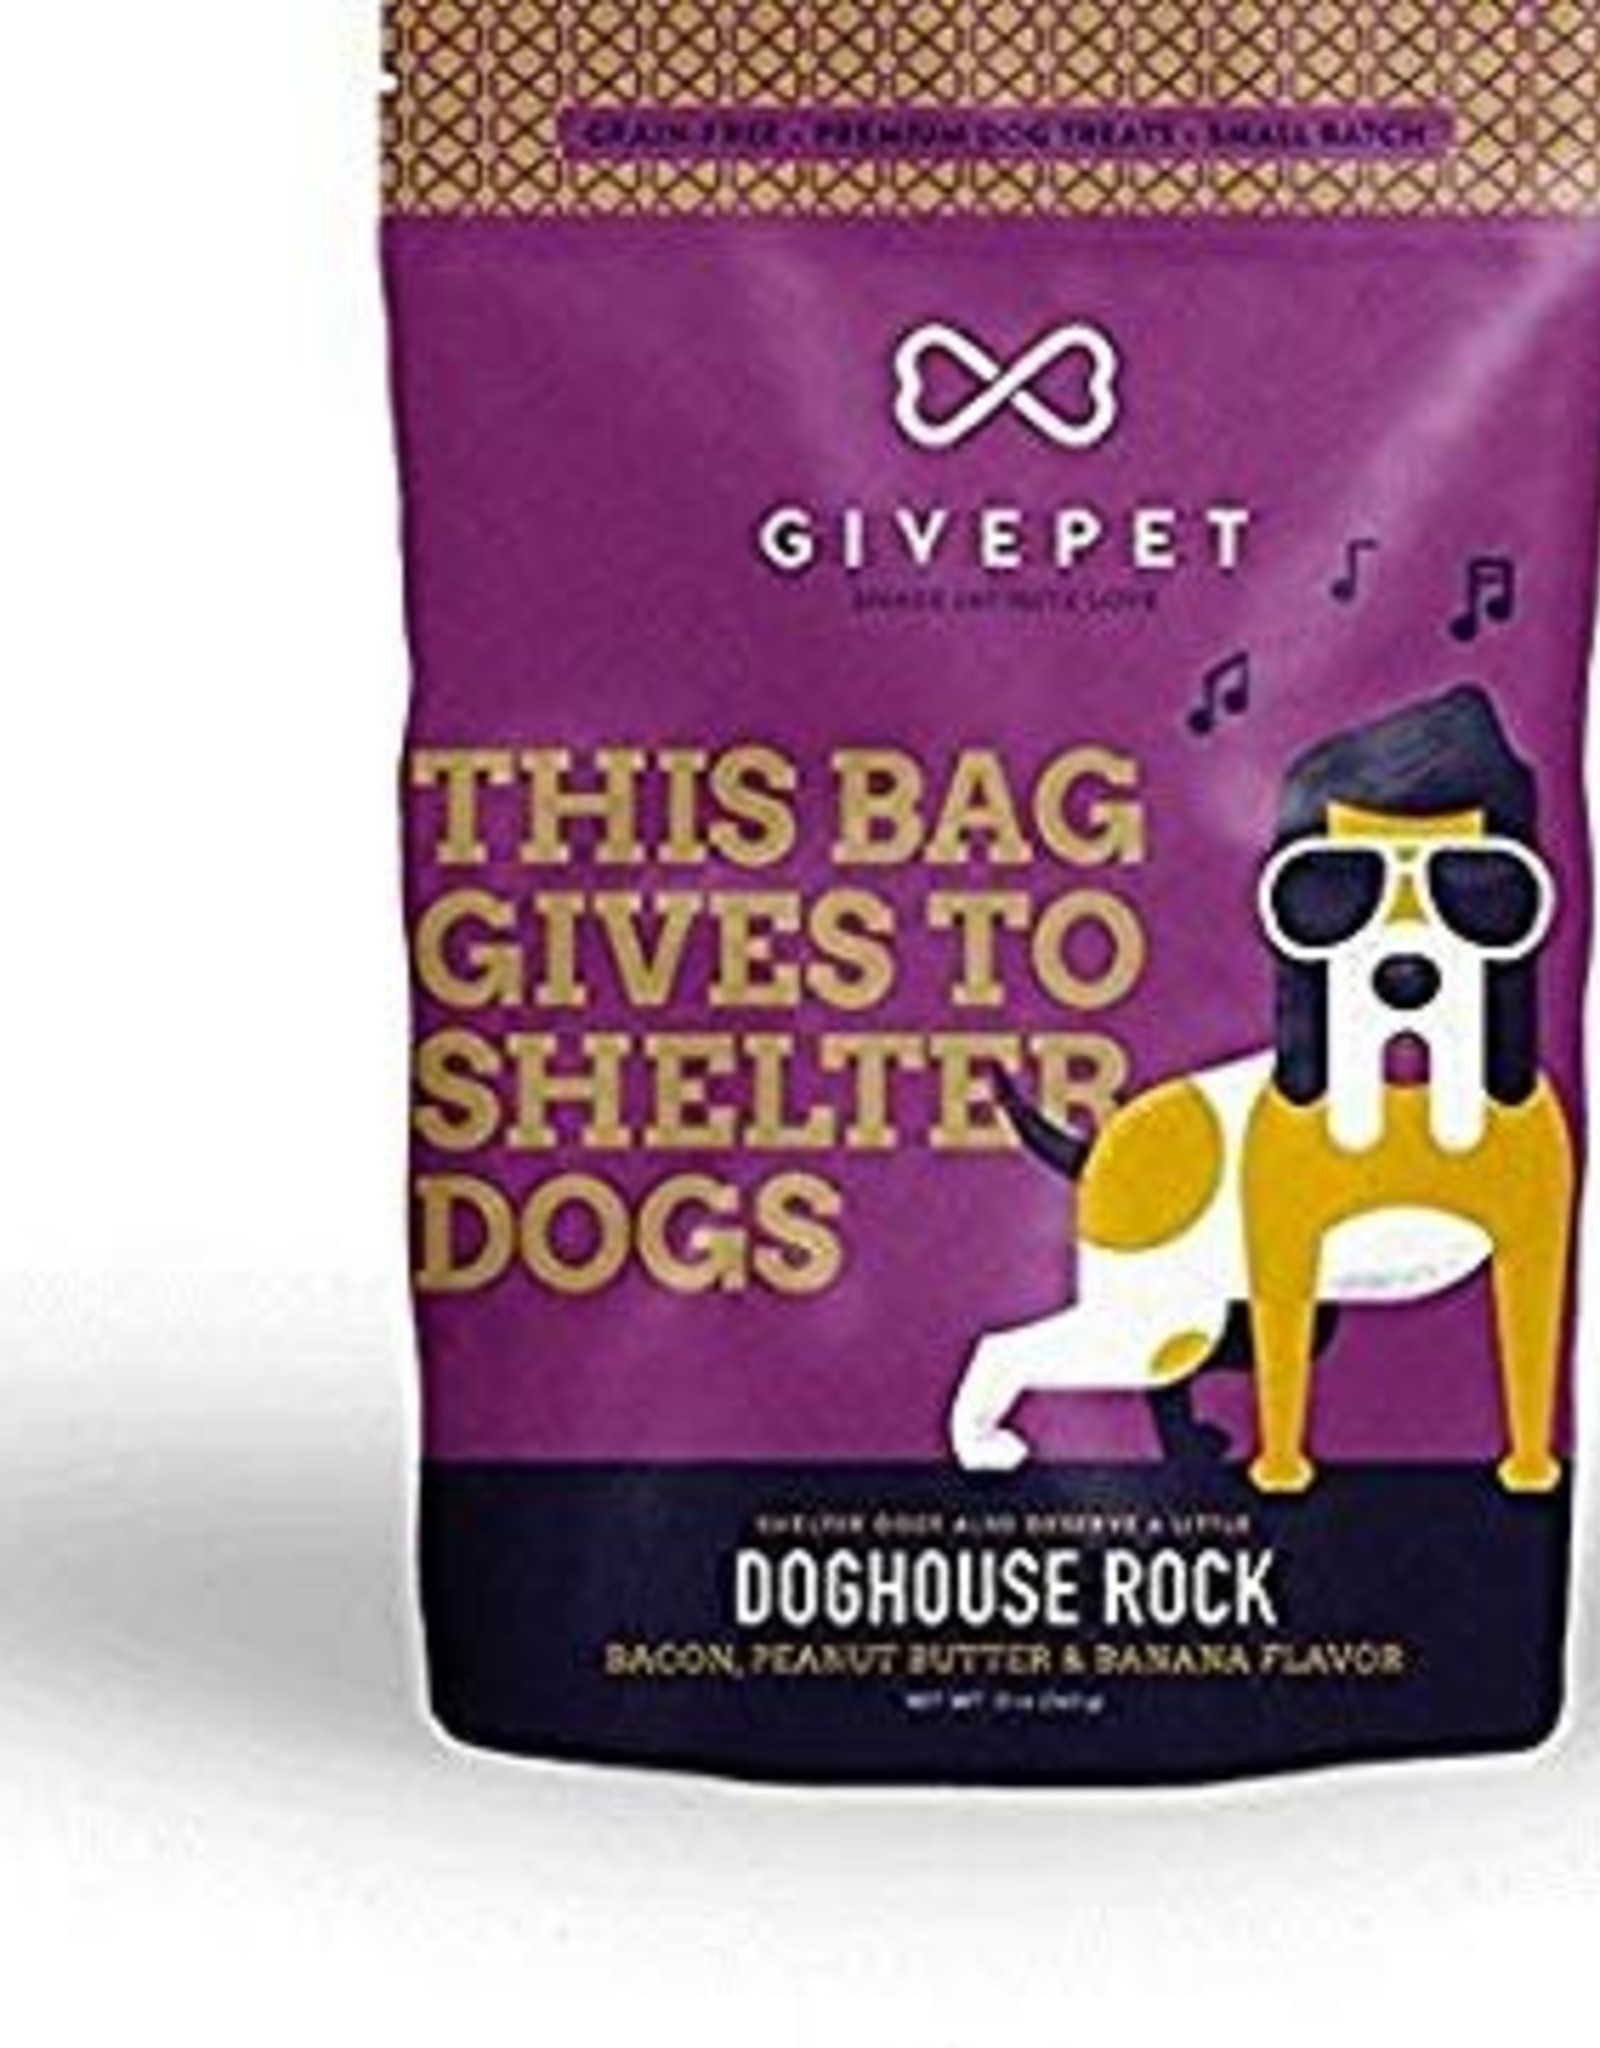 Give Pet Doghouse Rock Bacon, Banana & Peanut Butter Flavor Dog Treats, 12 oz.